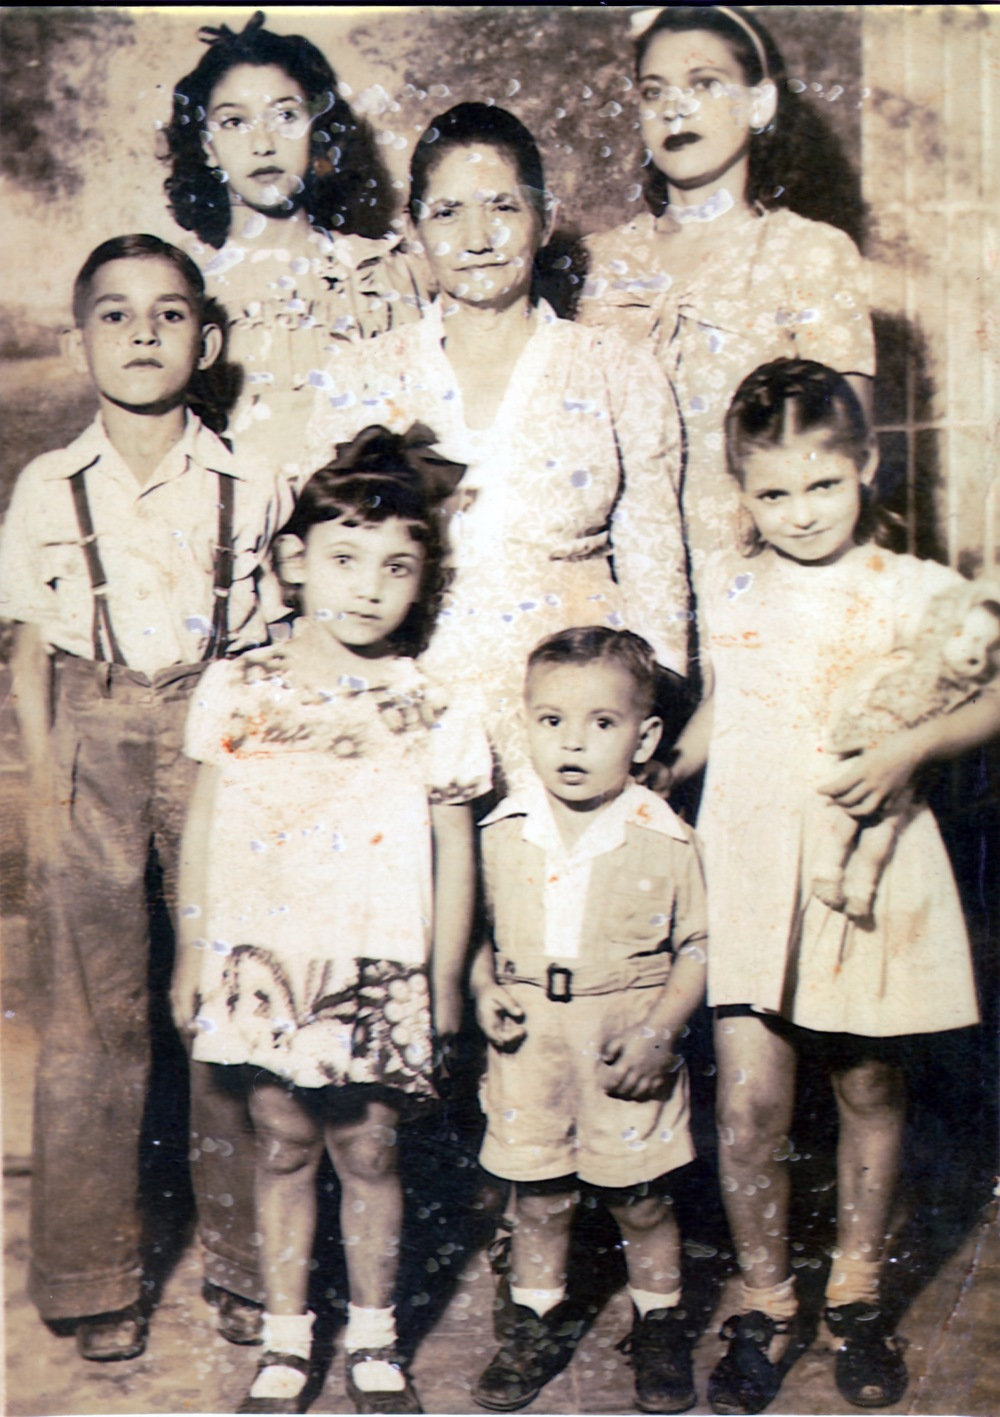 An early photography of my grandmother's family. Martha is pictured in the first row on the right, holding the doll. Her younger sister Juana is in the front row with the bow on her head.